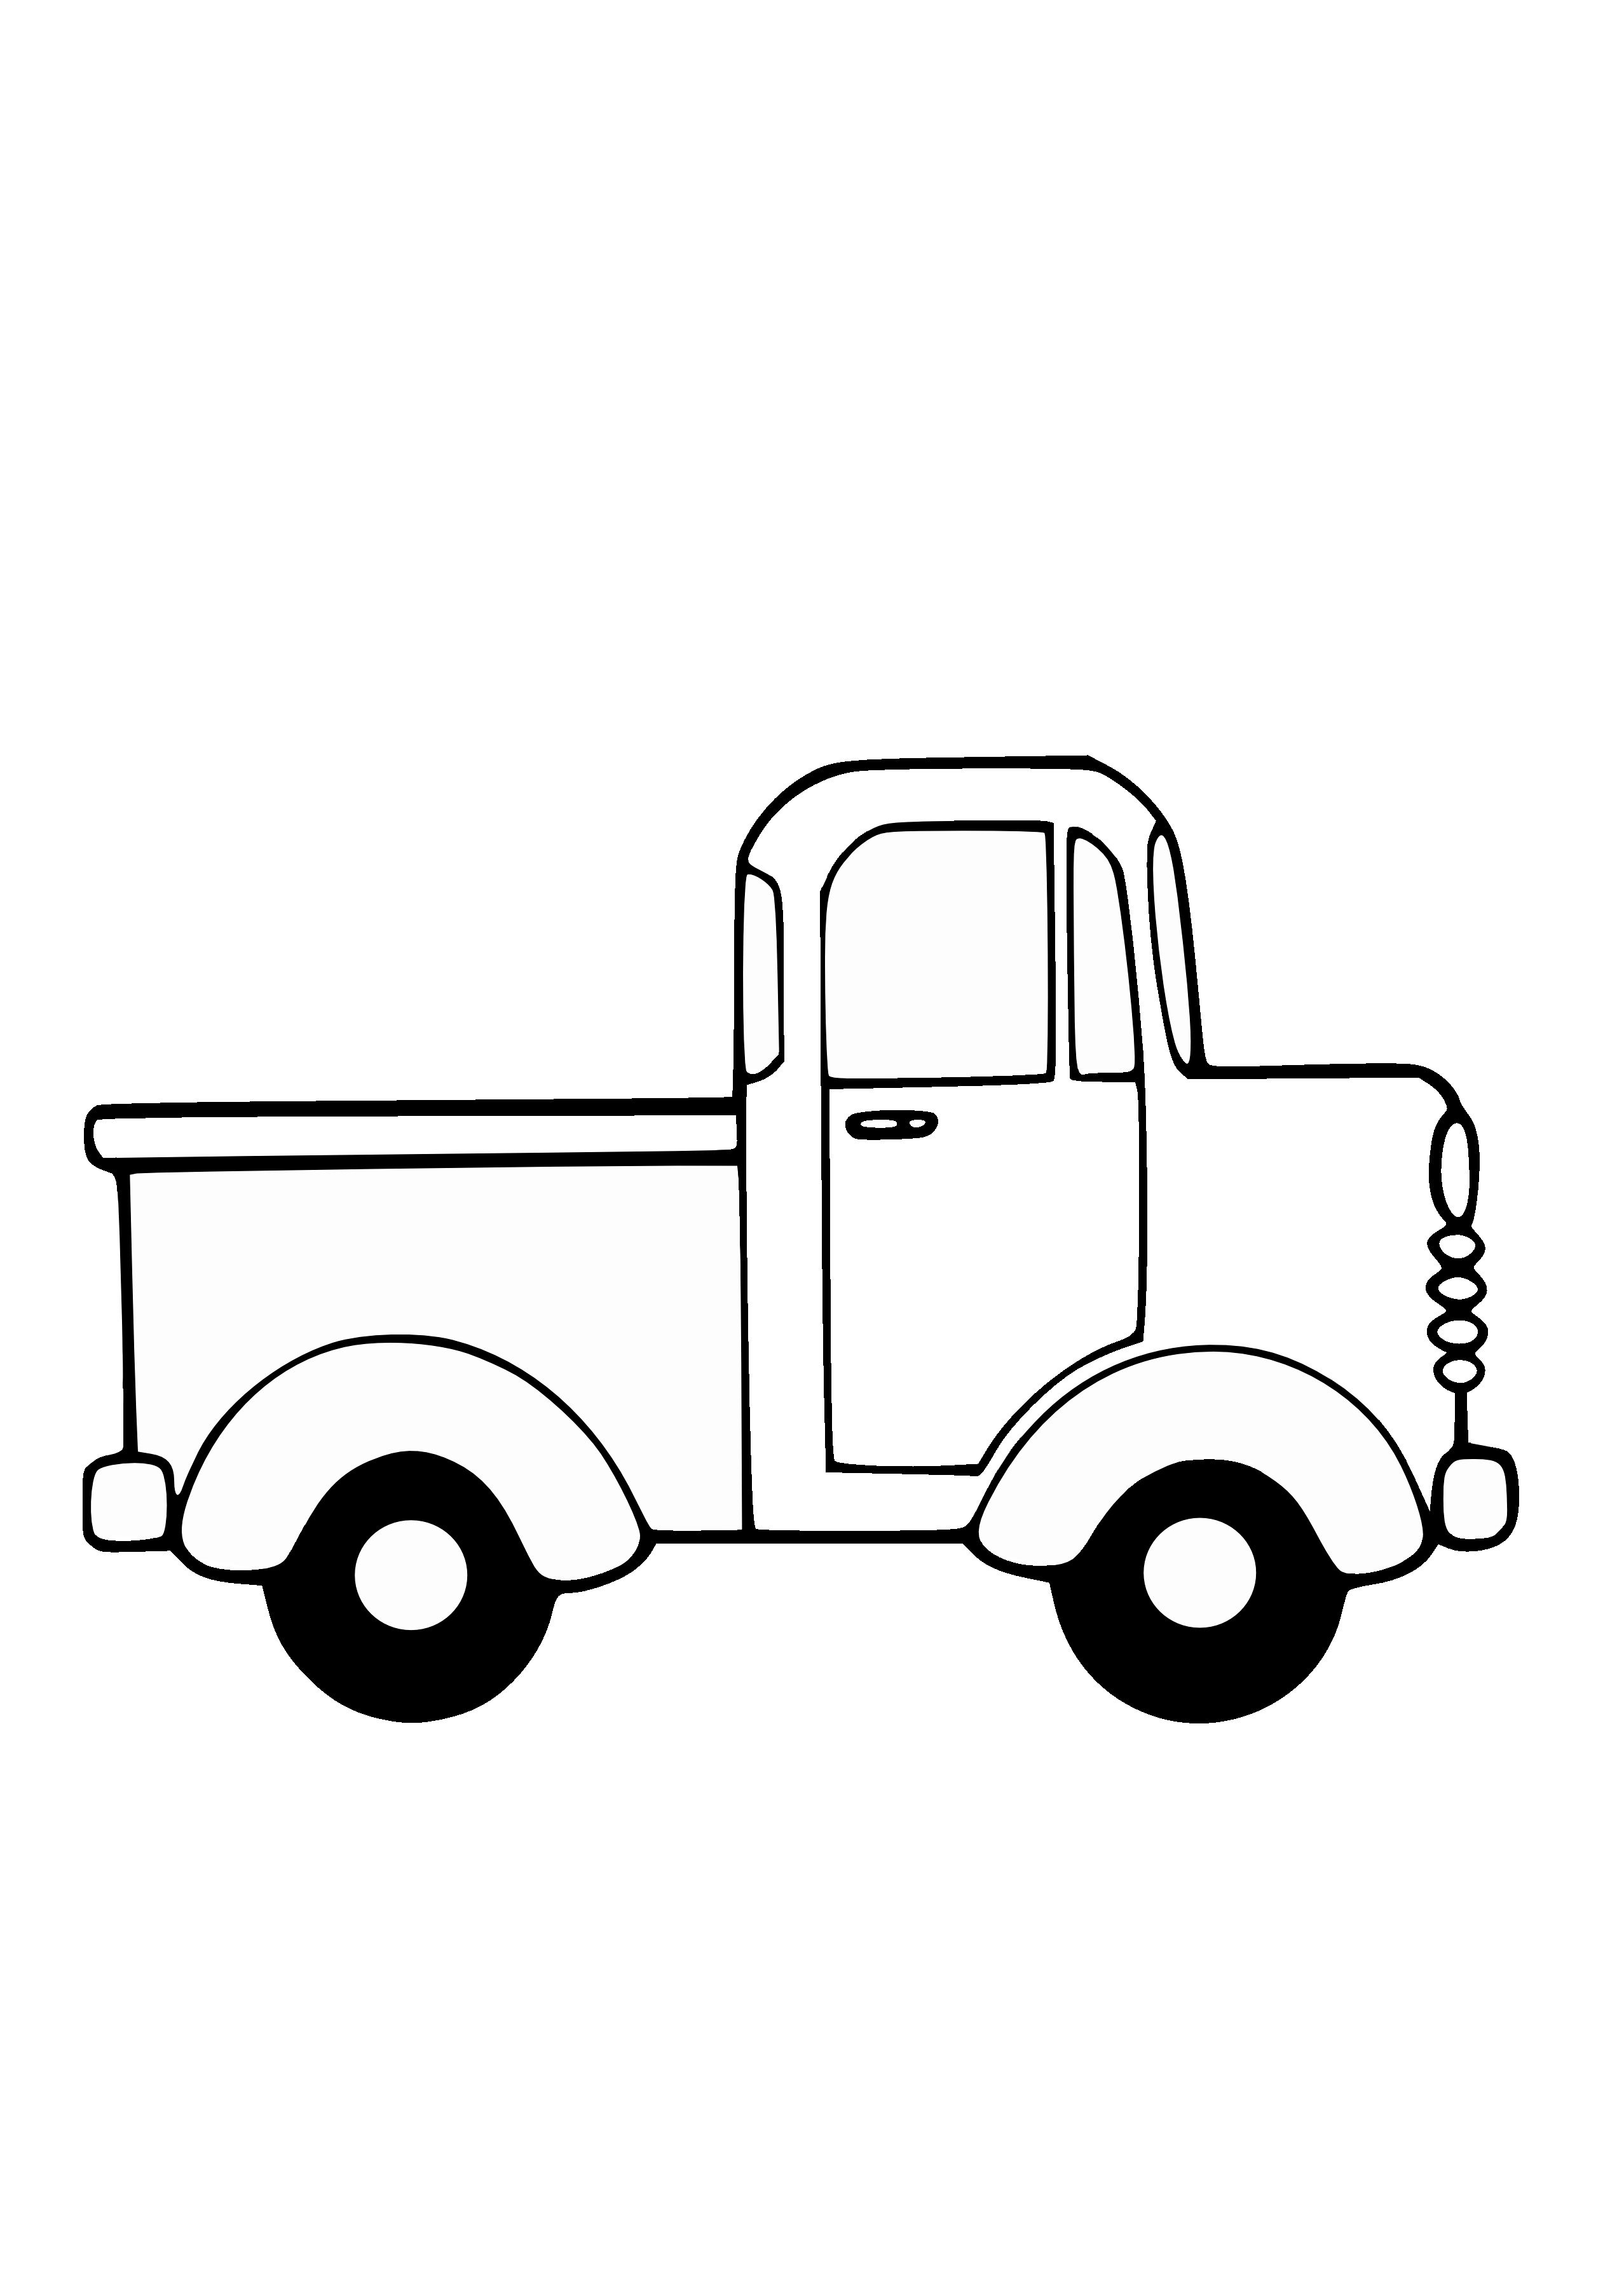 Tonka Truck Coloring Pages Best Of Free Truck Image Download Free